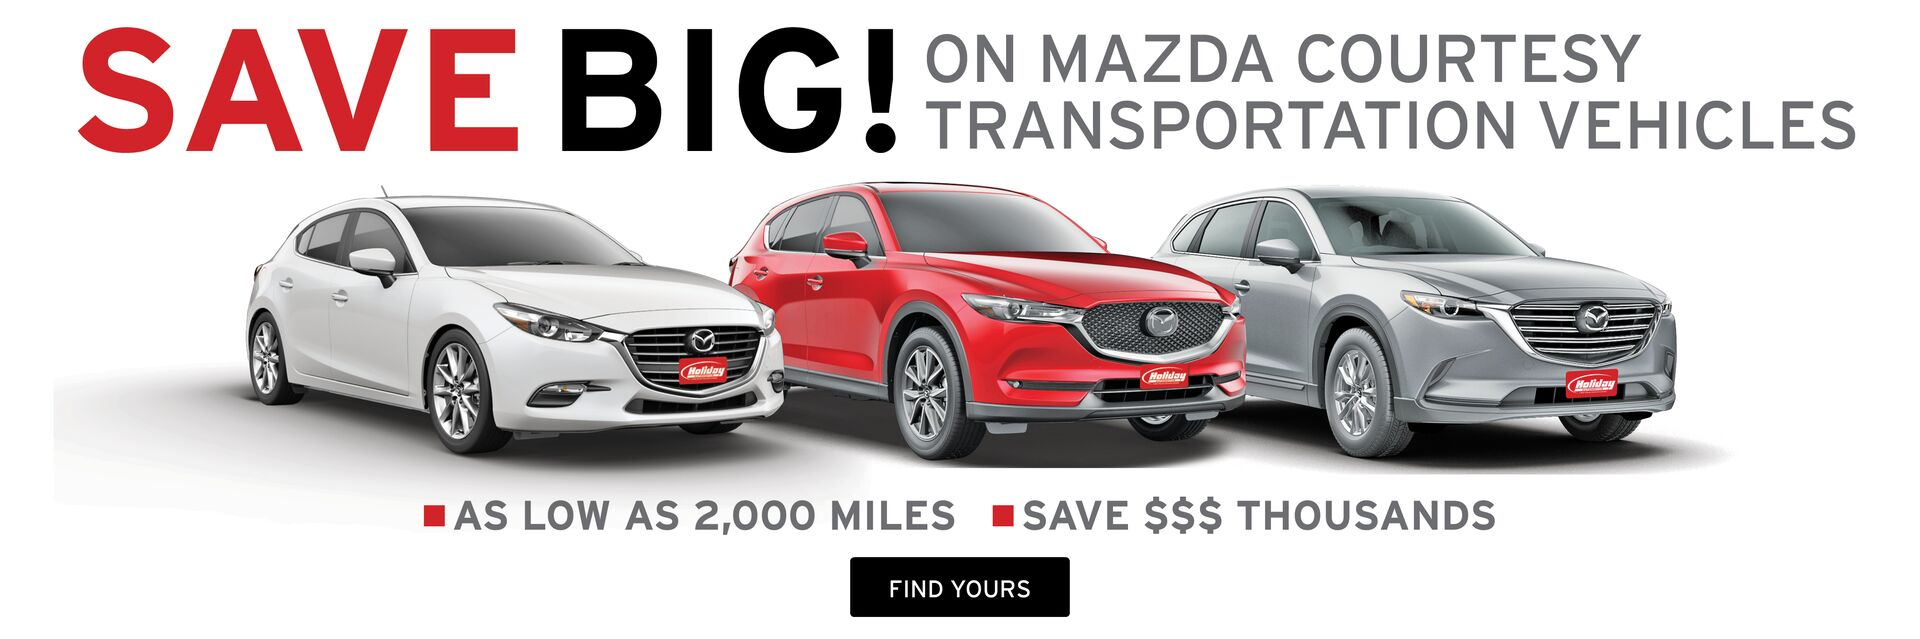 Huge Savings on Mazda Courtesy Transportation Vehicles at Holiday Mazda in Fond du Lac, WI